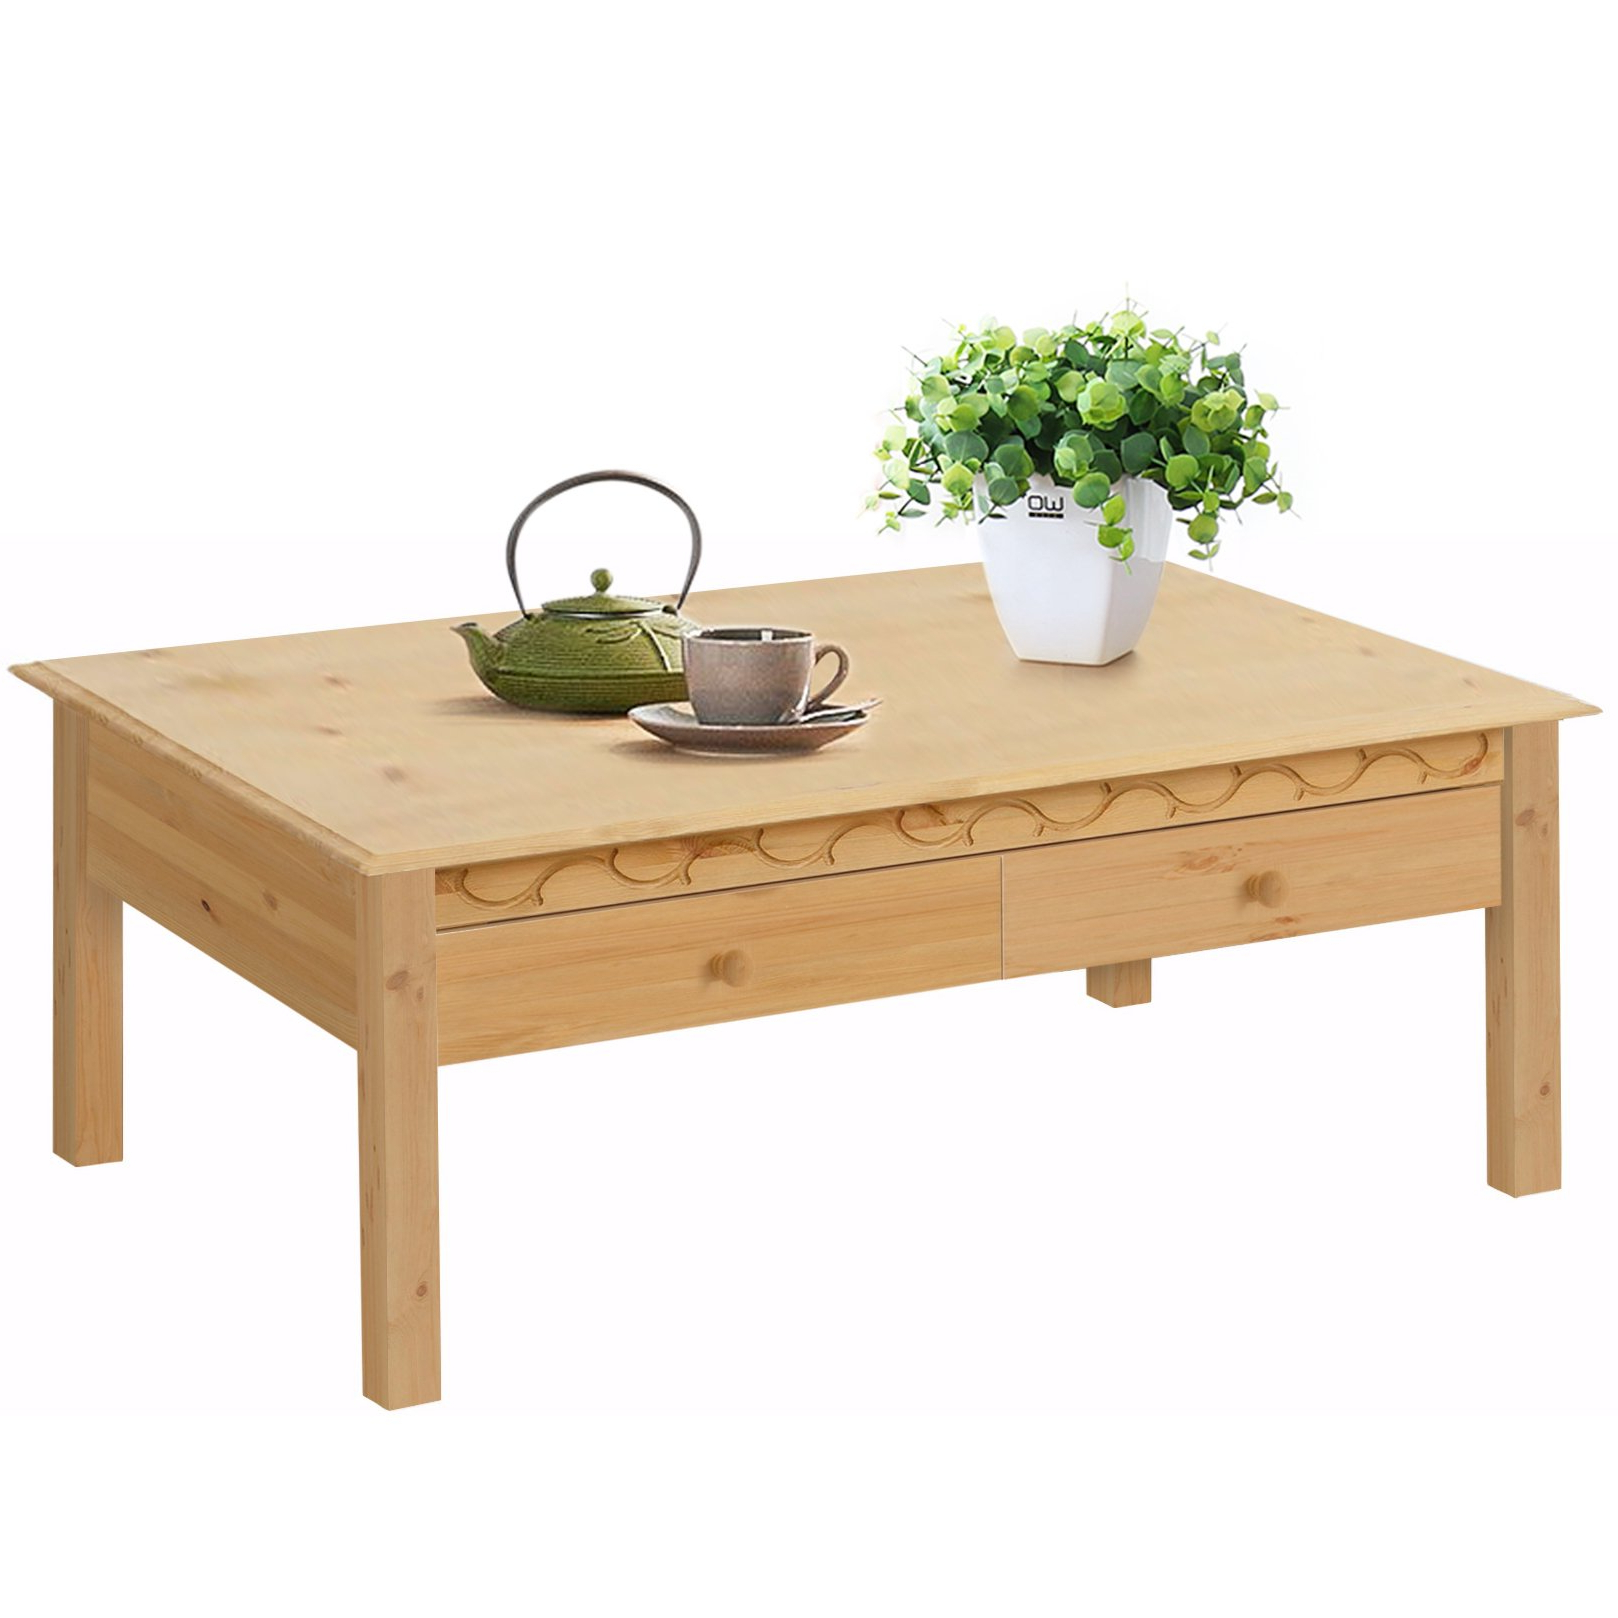 Natural Pine Coffee Tables With Most Recent Lando 1 Drawer Coffee Table, Solid Pine, Natural – Free Shipping (Gallery 12 of 20)